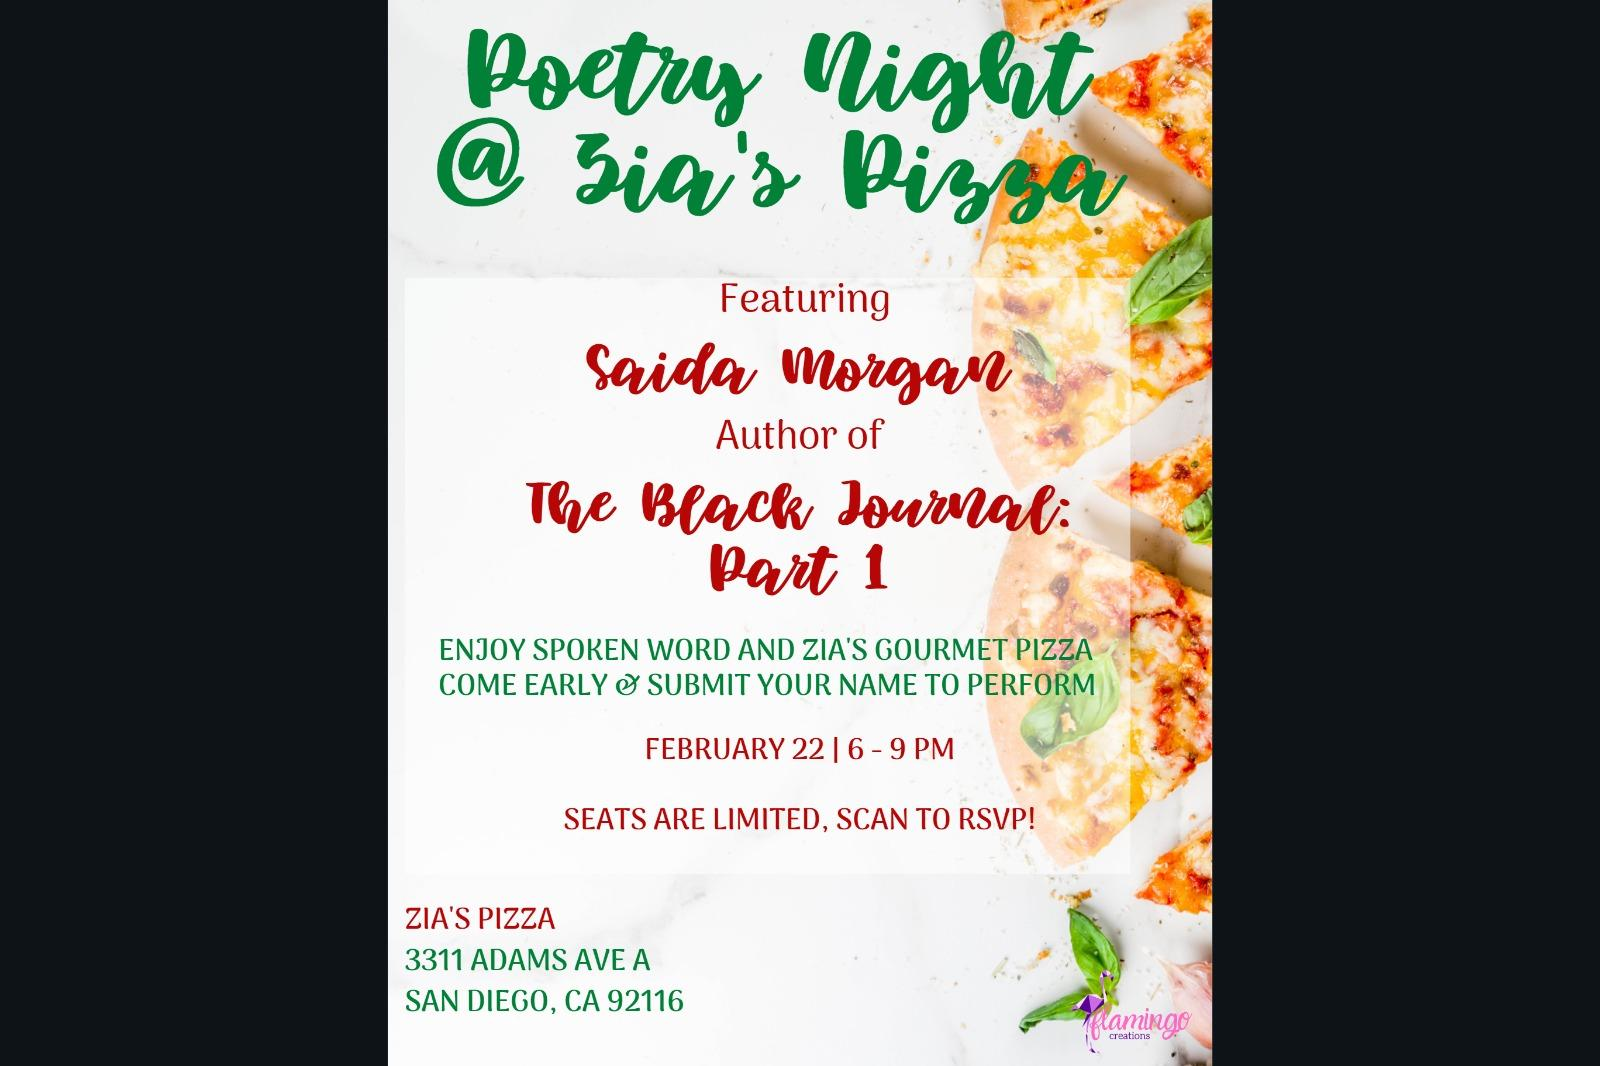 Pizza and Poetry at Zia's Gourmet Pizza